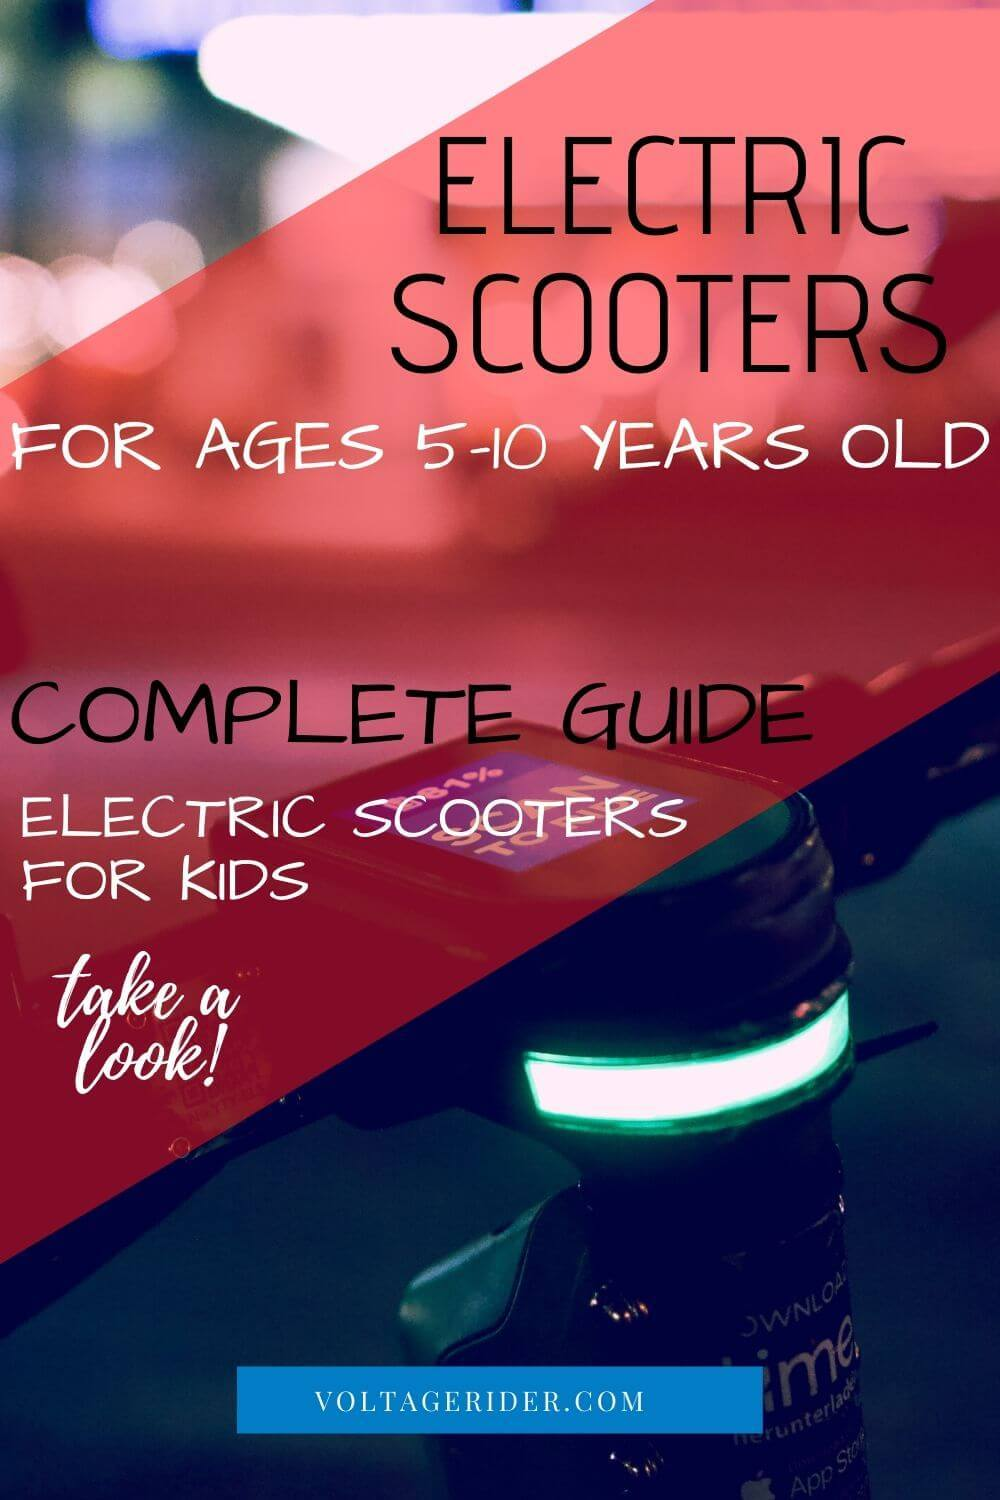 pinterest voltage rider electric scooters for 5 and 10 year old kids